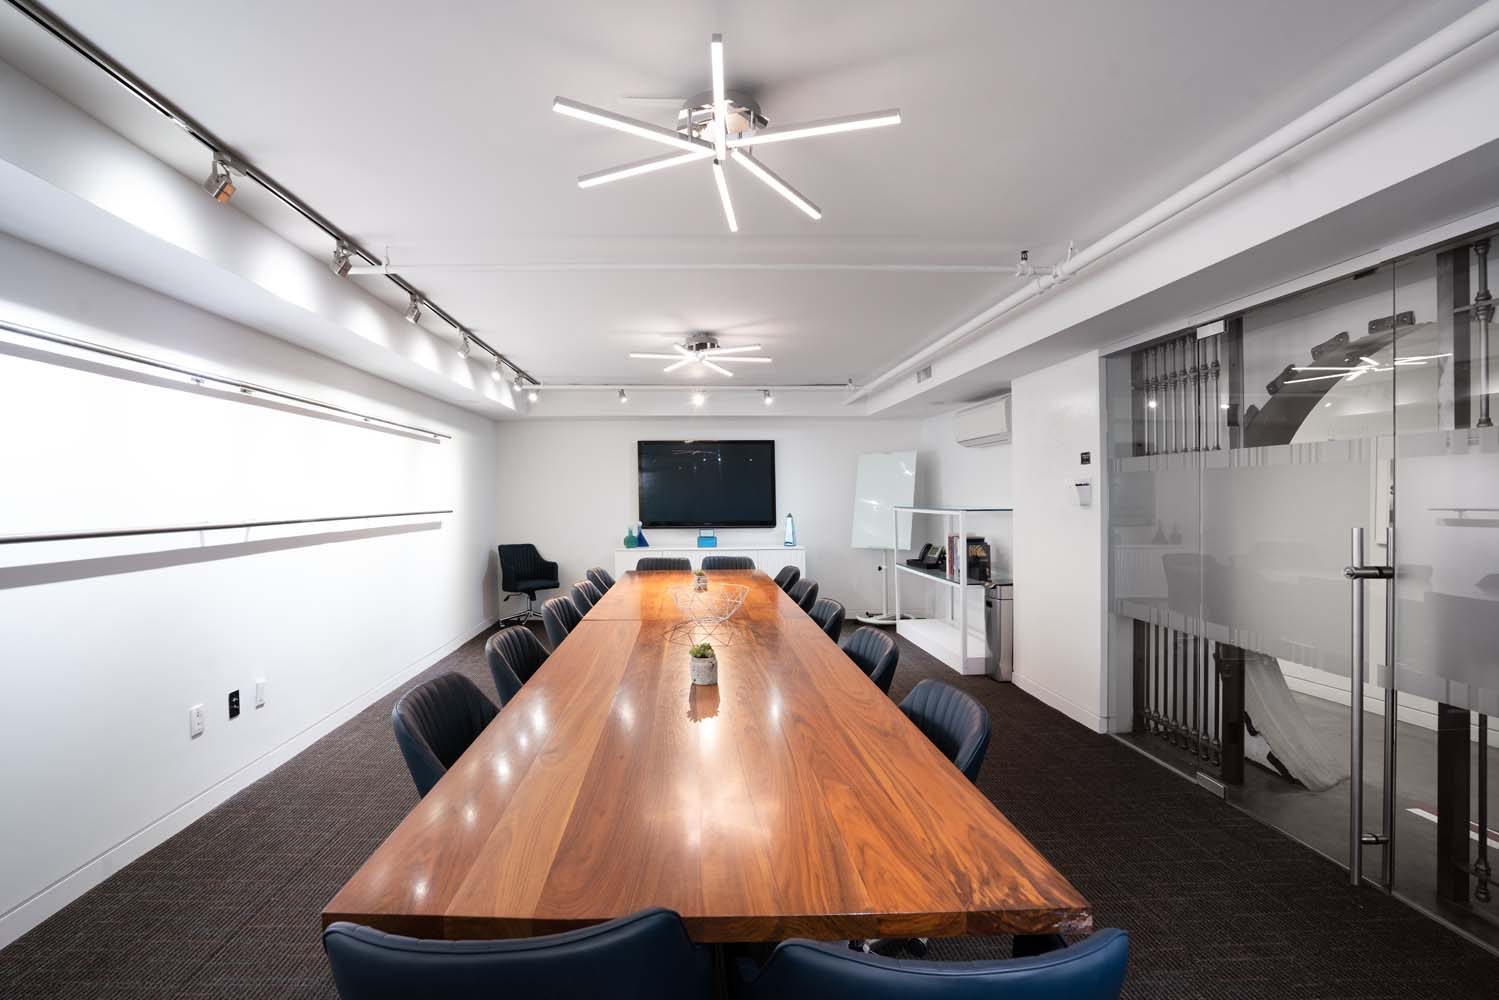 ConferenceRooms - Great for client meetings, team off-sites, market week, press previews, interviews, presentations, workshops & more.Rent by the hour, day, or week.